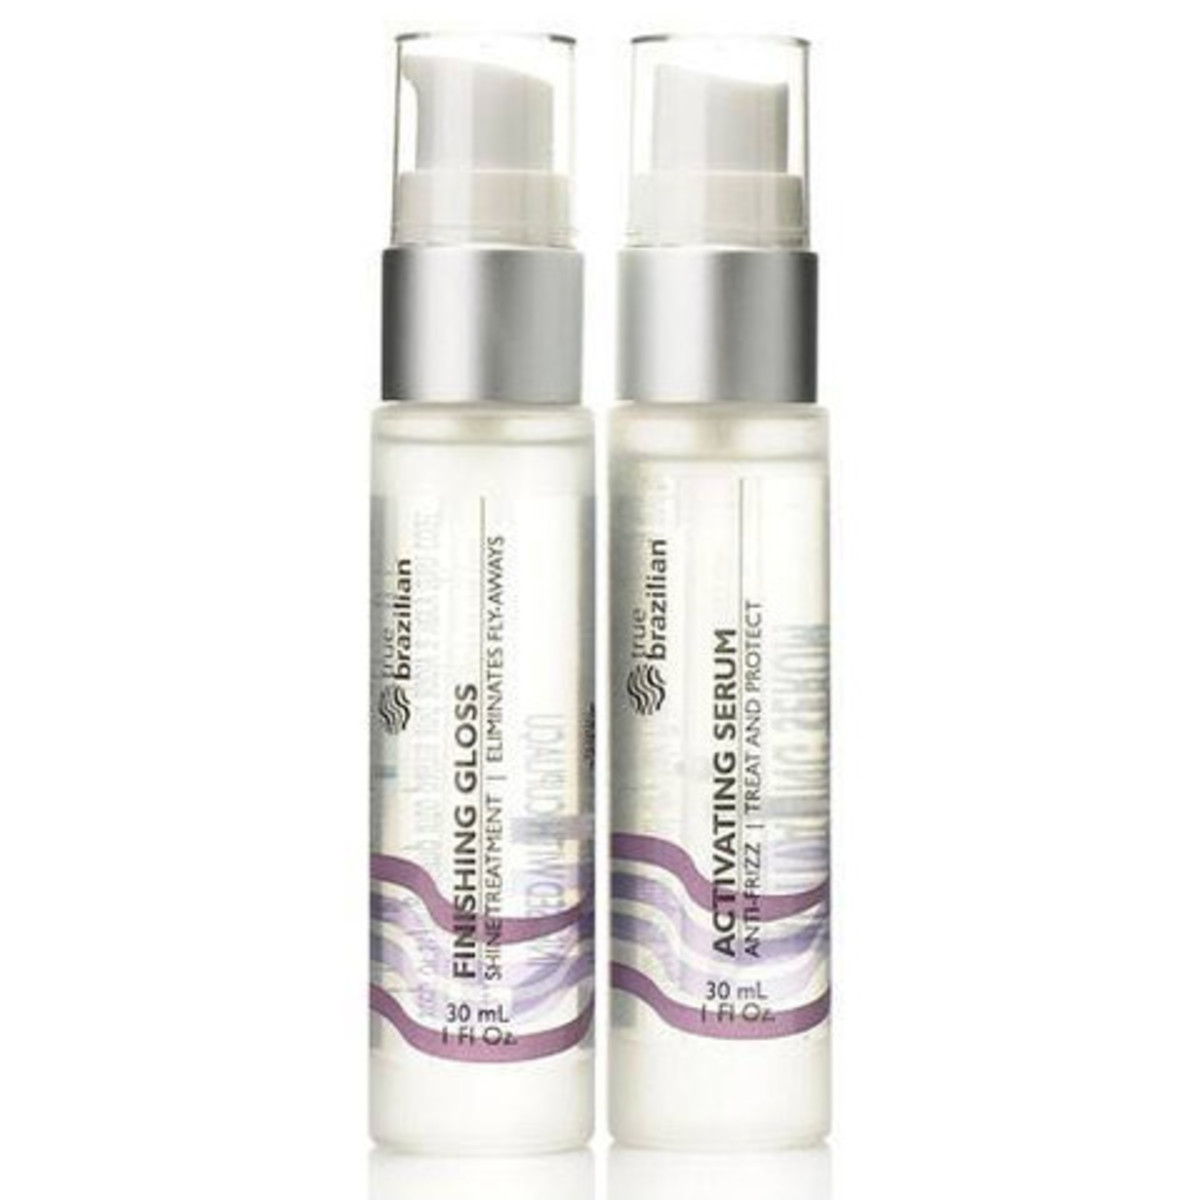 Suzanne Sommers True Brazilian Activating Serum and Finishing Gloss